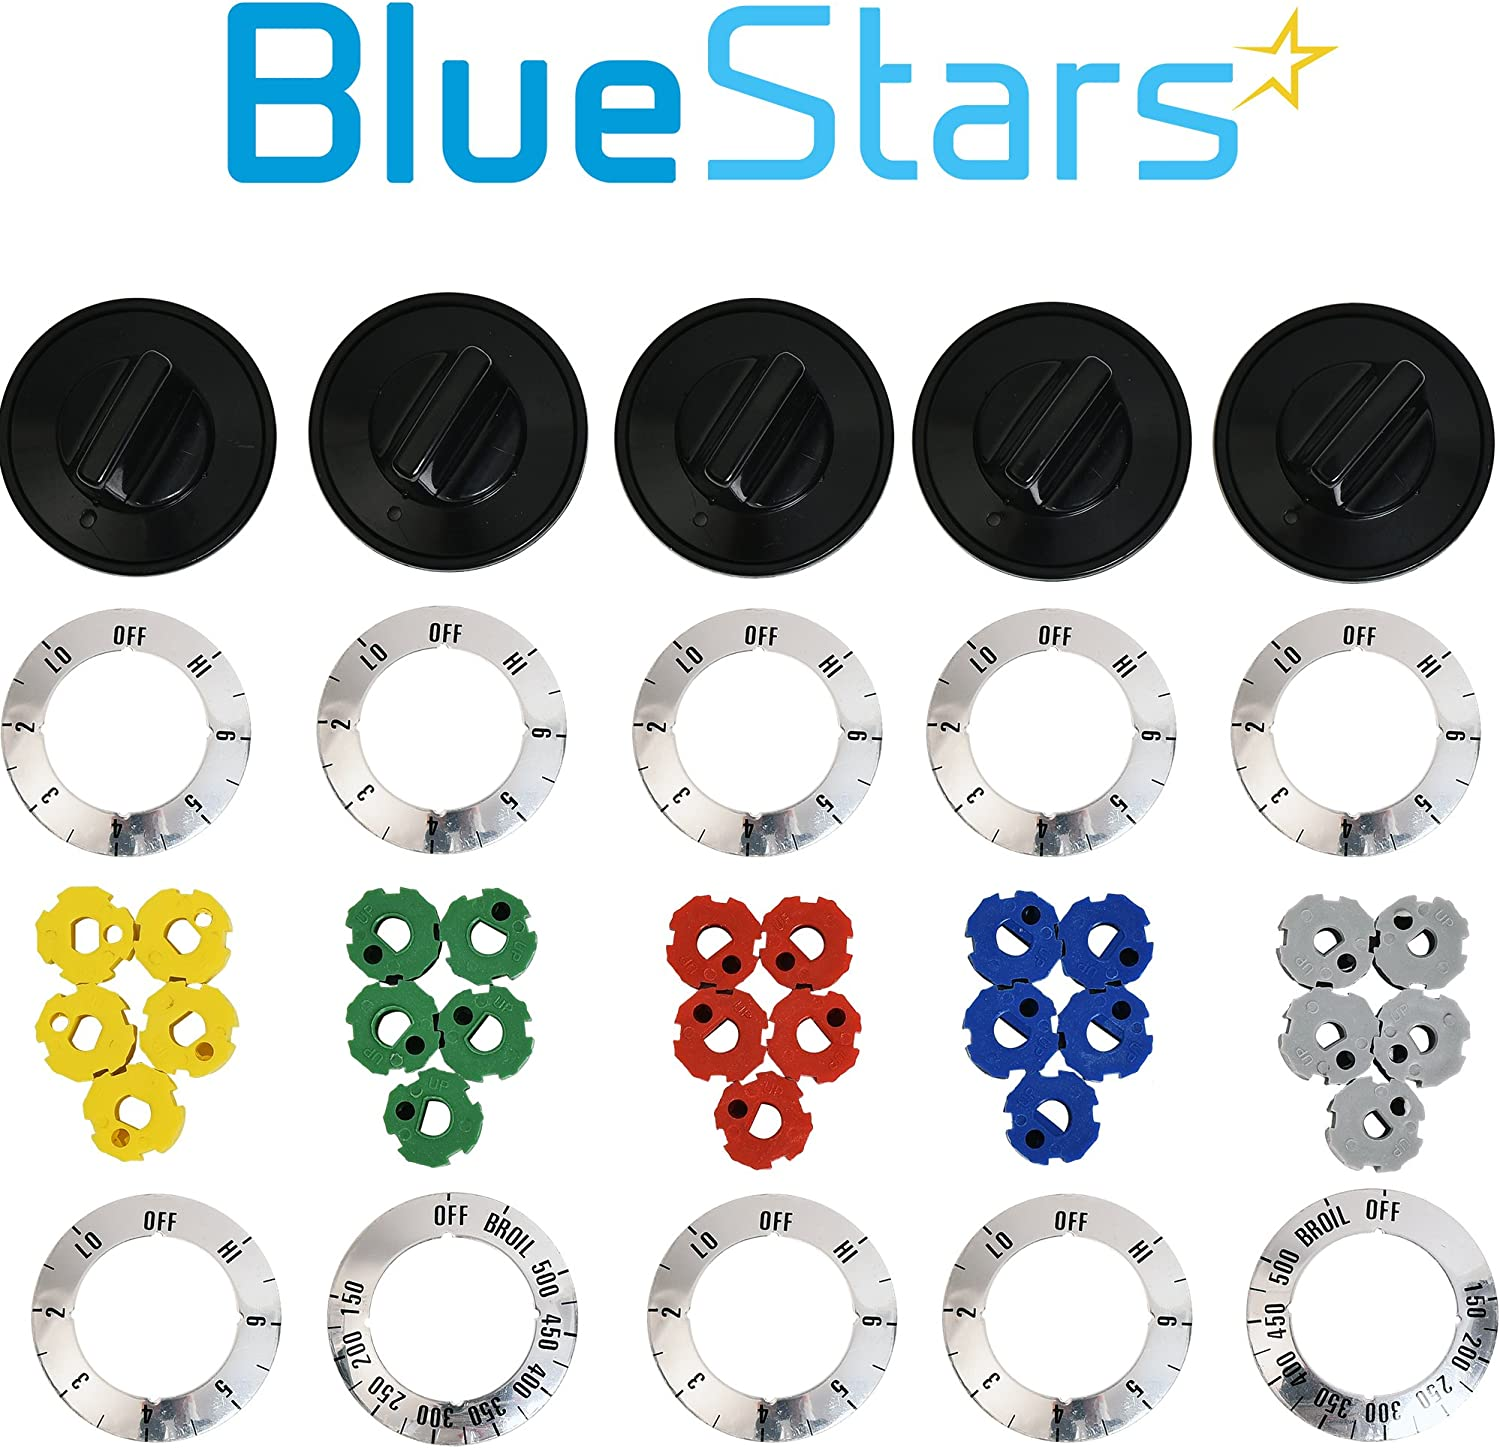 Replaces 1461063 AP4345833 Exact Fit For GE /& Hotpoint Ranges Ultra Durable WB03T10282 Range Infinite Switch Knob Replacement Part by Blue Stars